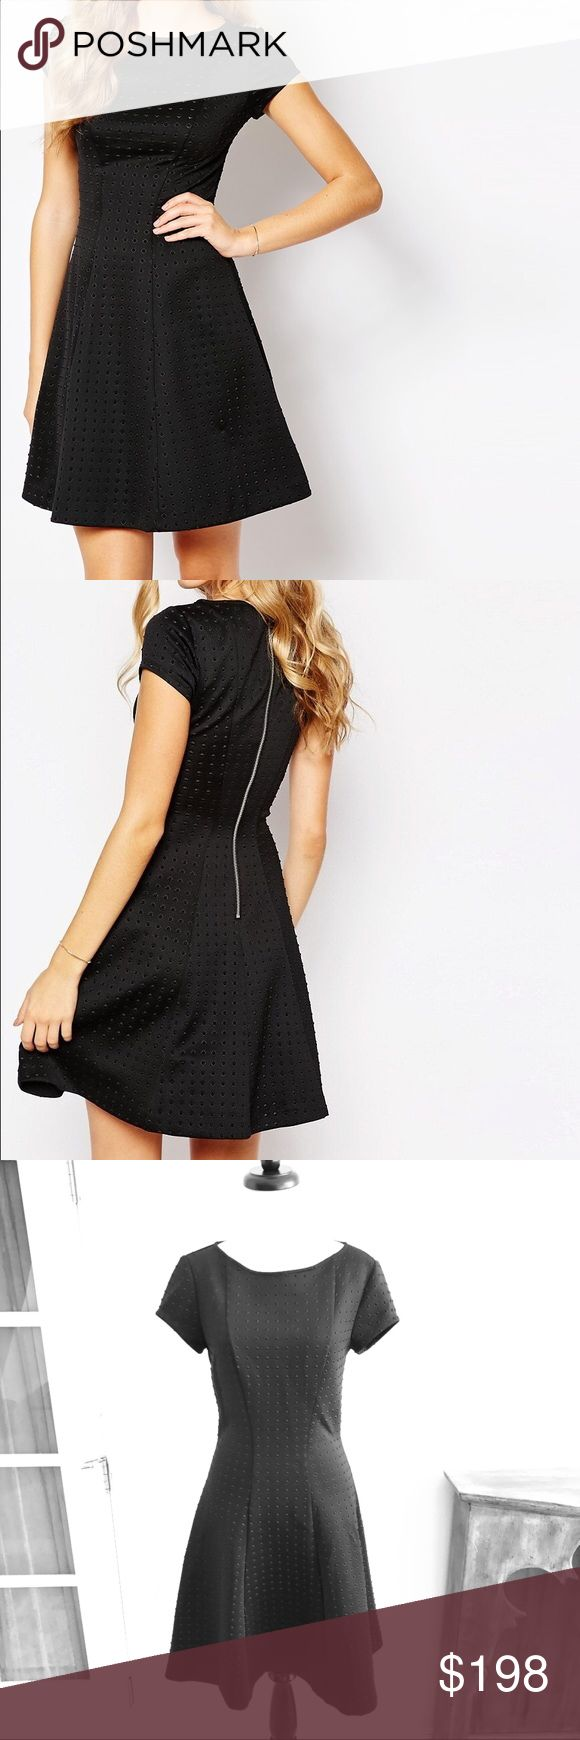 """Ted Baker- Rizzzo Black Panelled Skater Dress NWT Stunning and beautiful! Ted Baker """"Rizzzo"""" panelled skater dress in black. Short cap sleeves. Embossed fabric. Ted Baker size 2 (US size 6). Length 37.5"""". Waist 27.5"""". Roomy hip area. Brand new with tags attached. No trades please! Ted Baker Dresses Midi"""